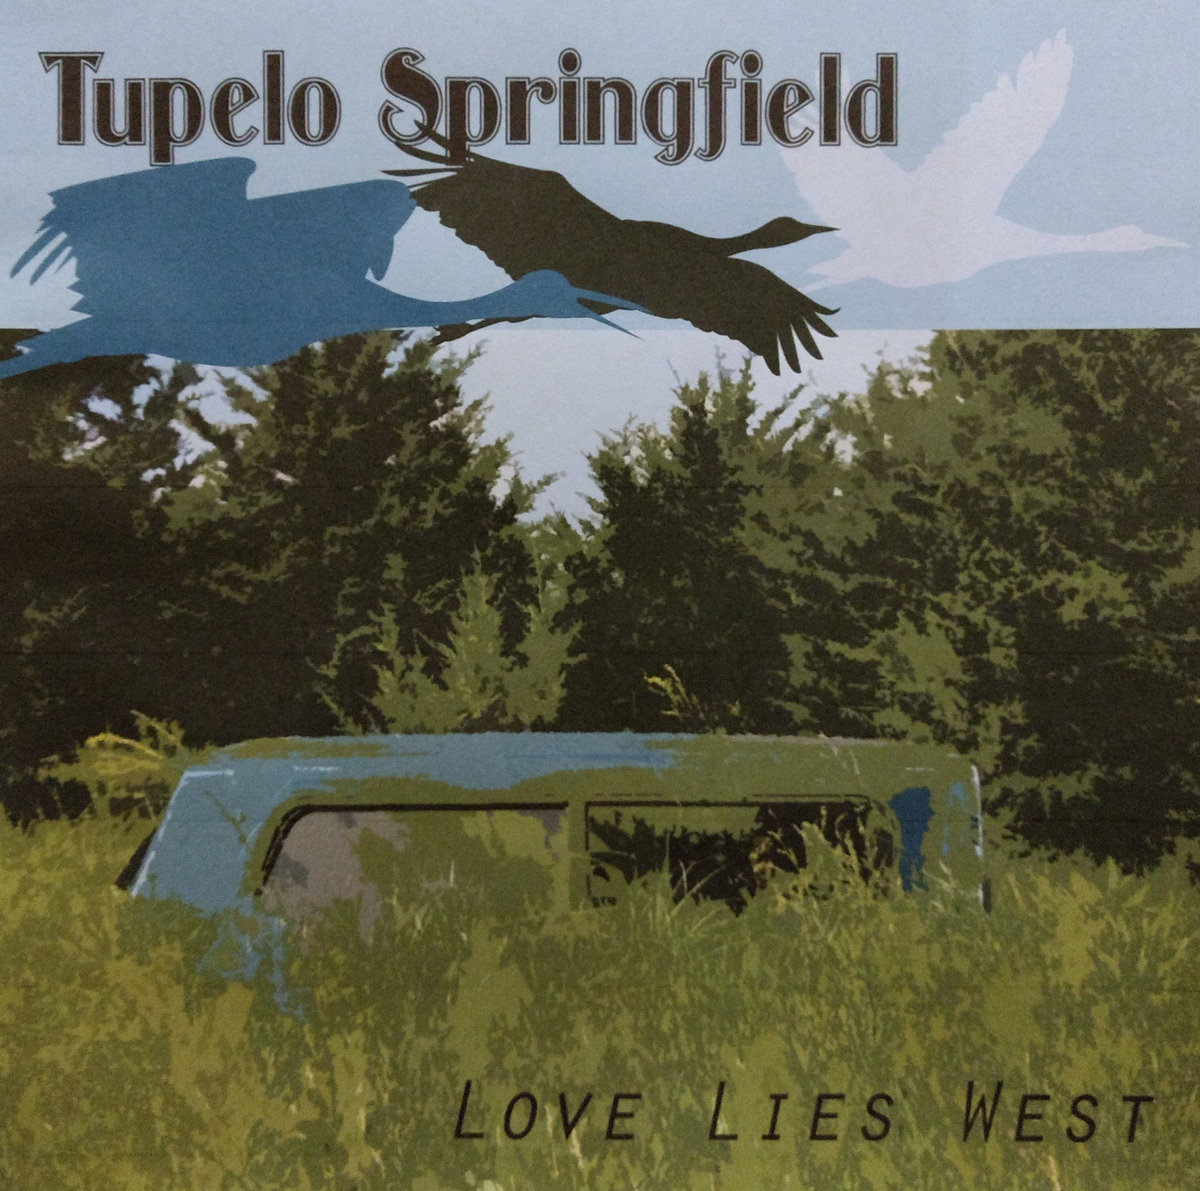 Album art for Tupelo Springfield's new EP featuring silhouettes of geese and an old car